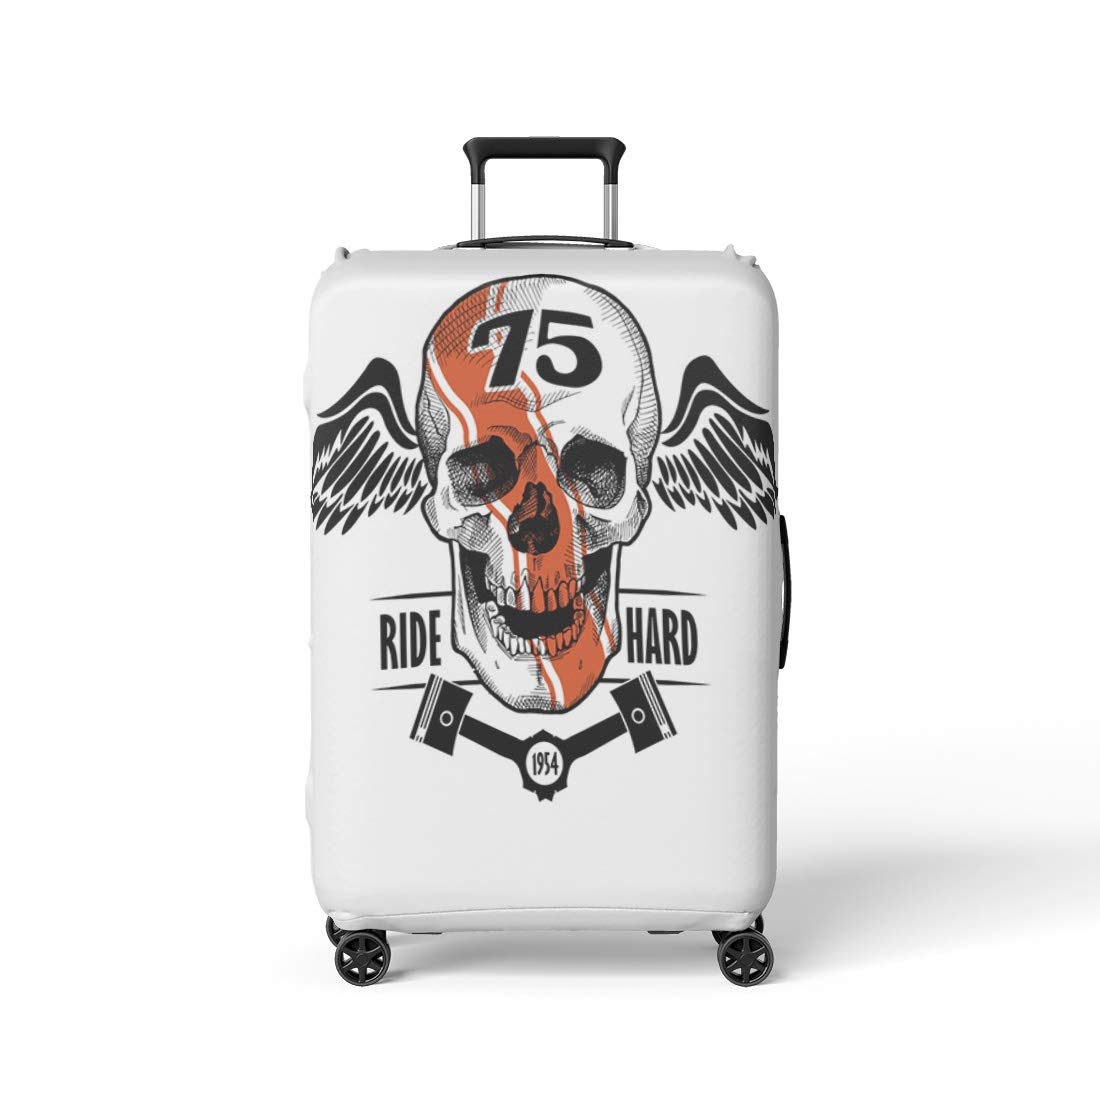 dc2feeafc57e Amazon.com: Semtomn Luggage Cover Cool Racer Smiling Skull Wings ...